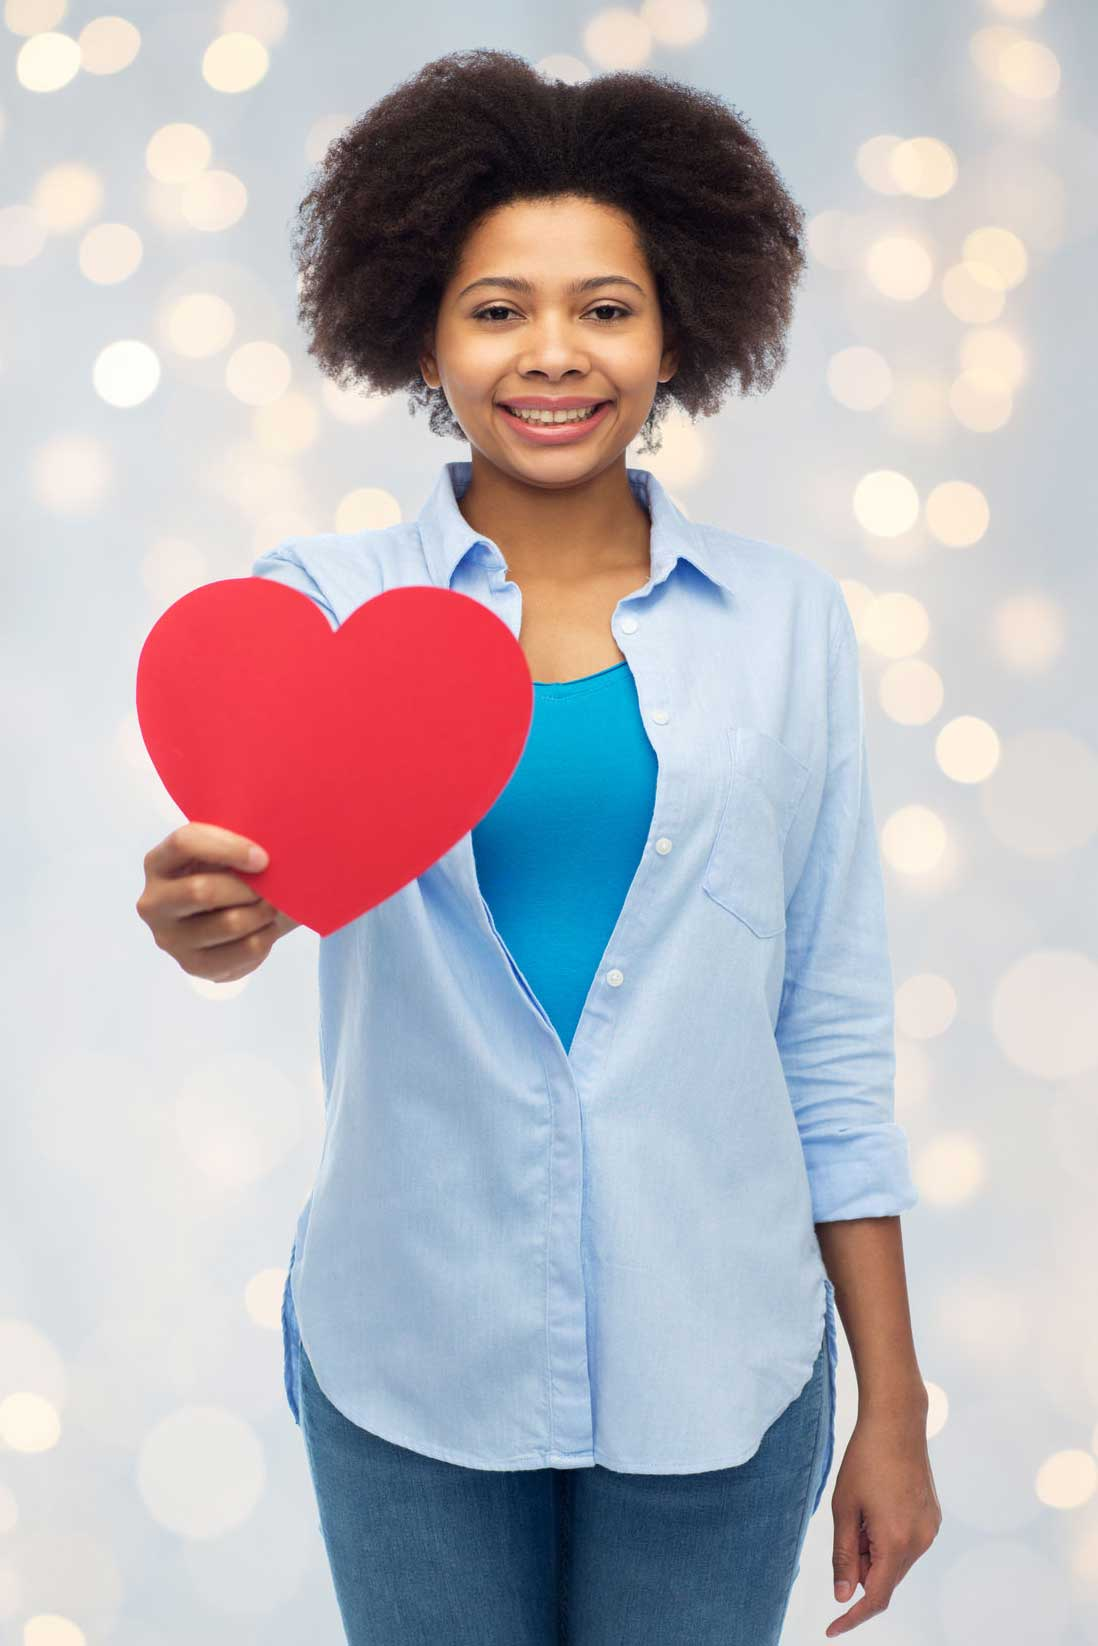 Image of a female employee holding a red paper heart